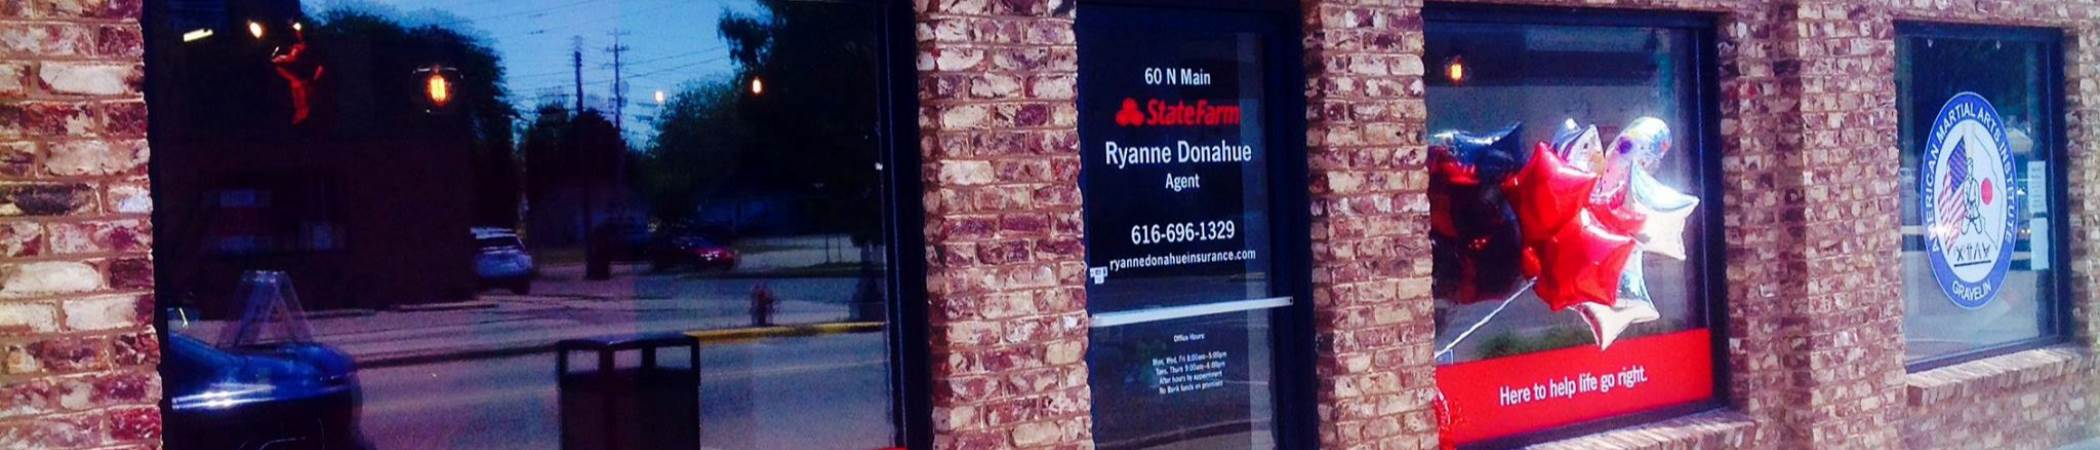 Ryanne Donahue State Farm Insurance in Rockford, MI | Home, Auto Insurance & more